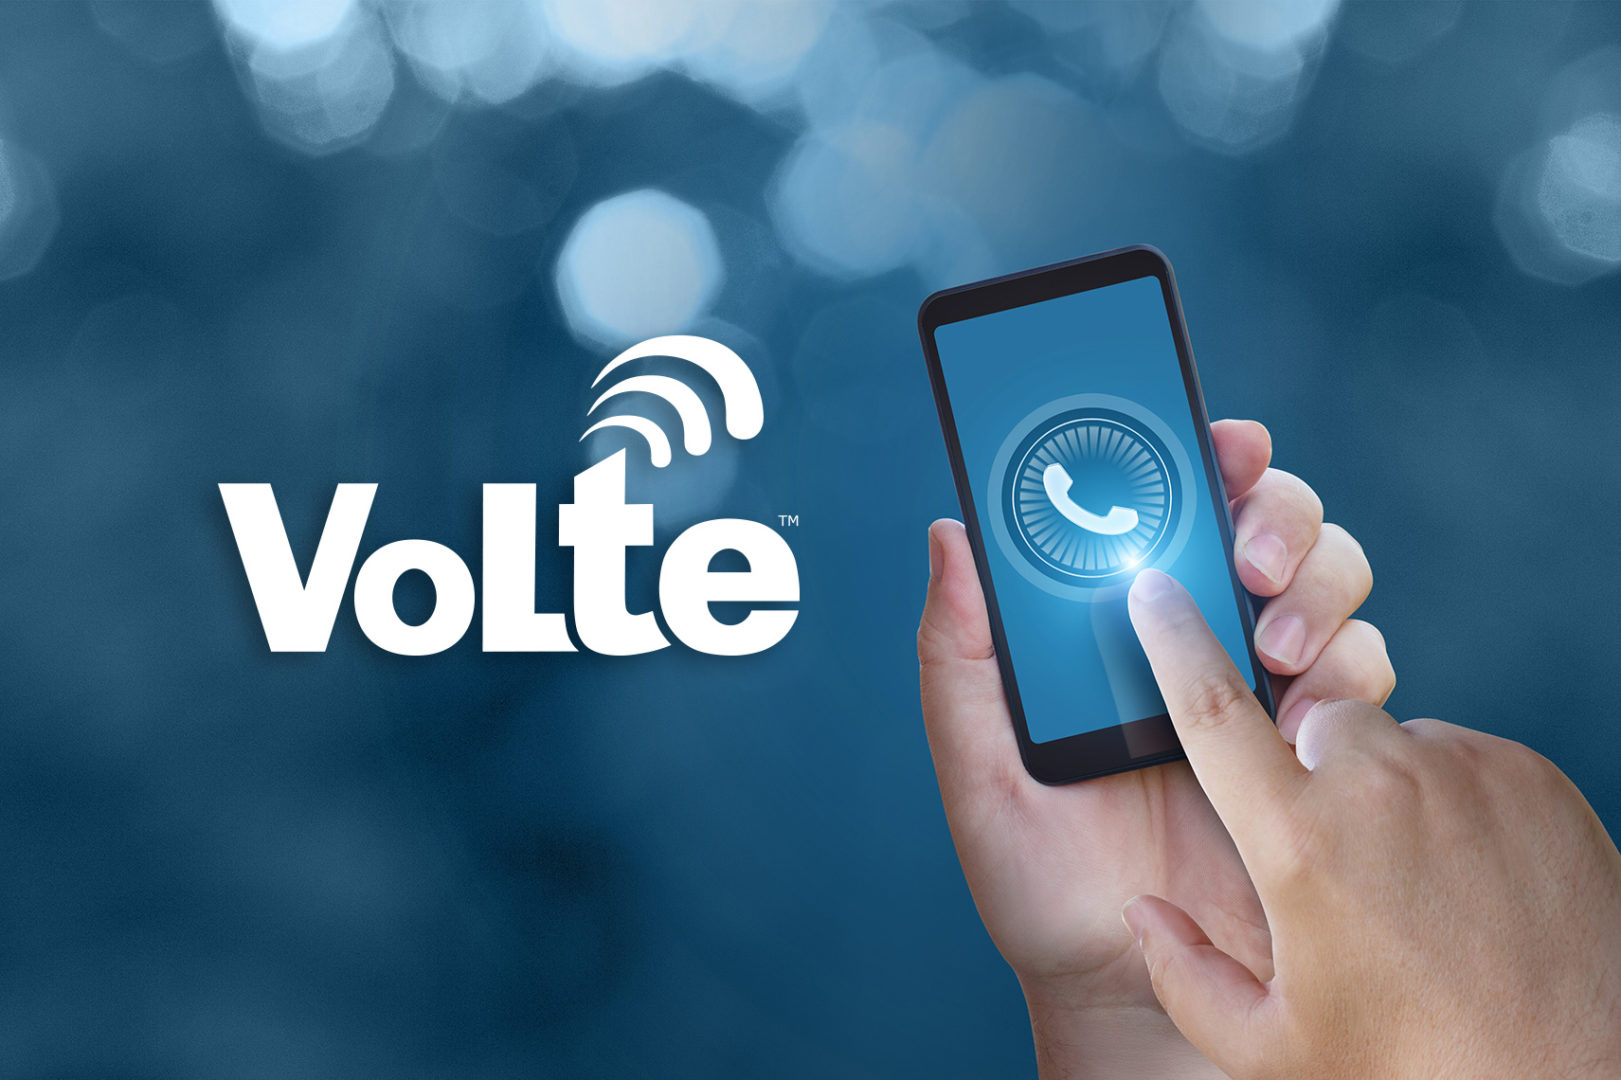 VoLTE - What difference does it make?